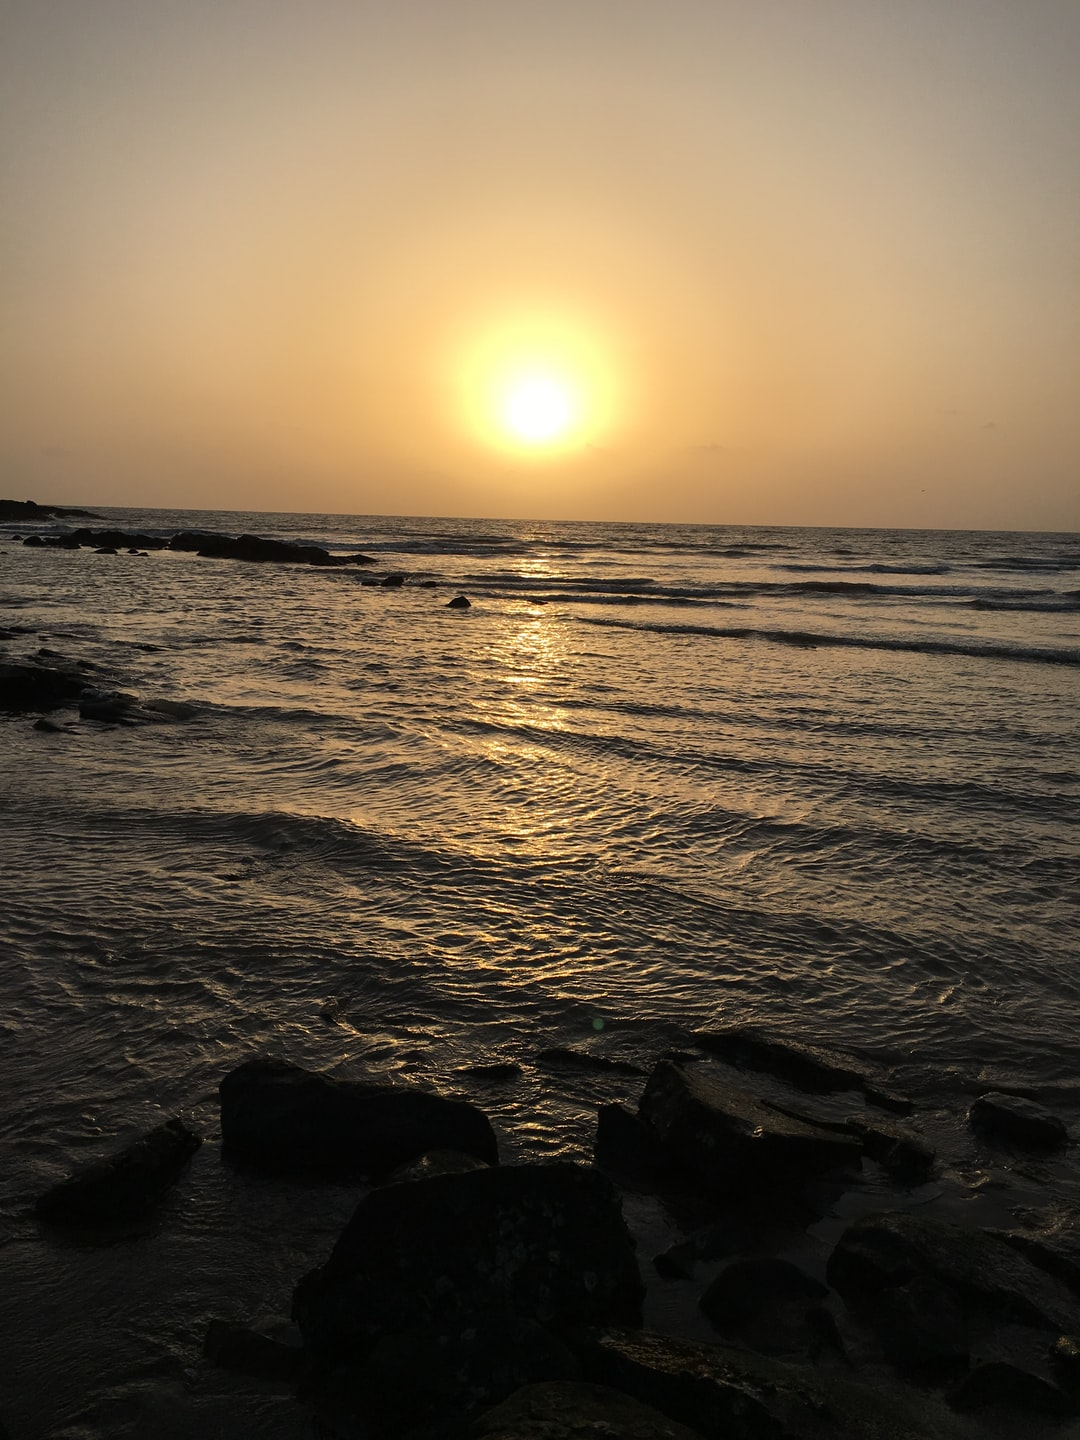 This photograph is taken on aksa beach in sunset view,the waves were on low tide